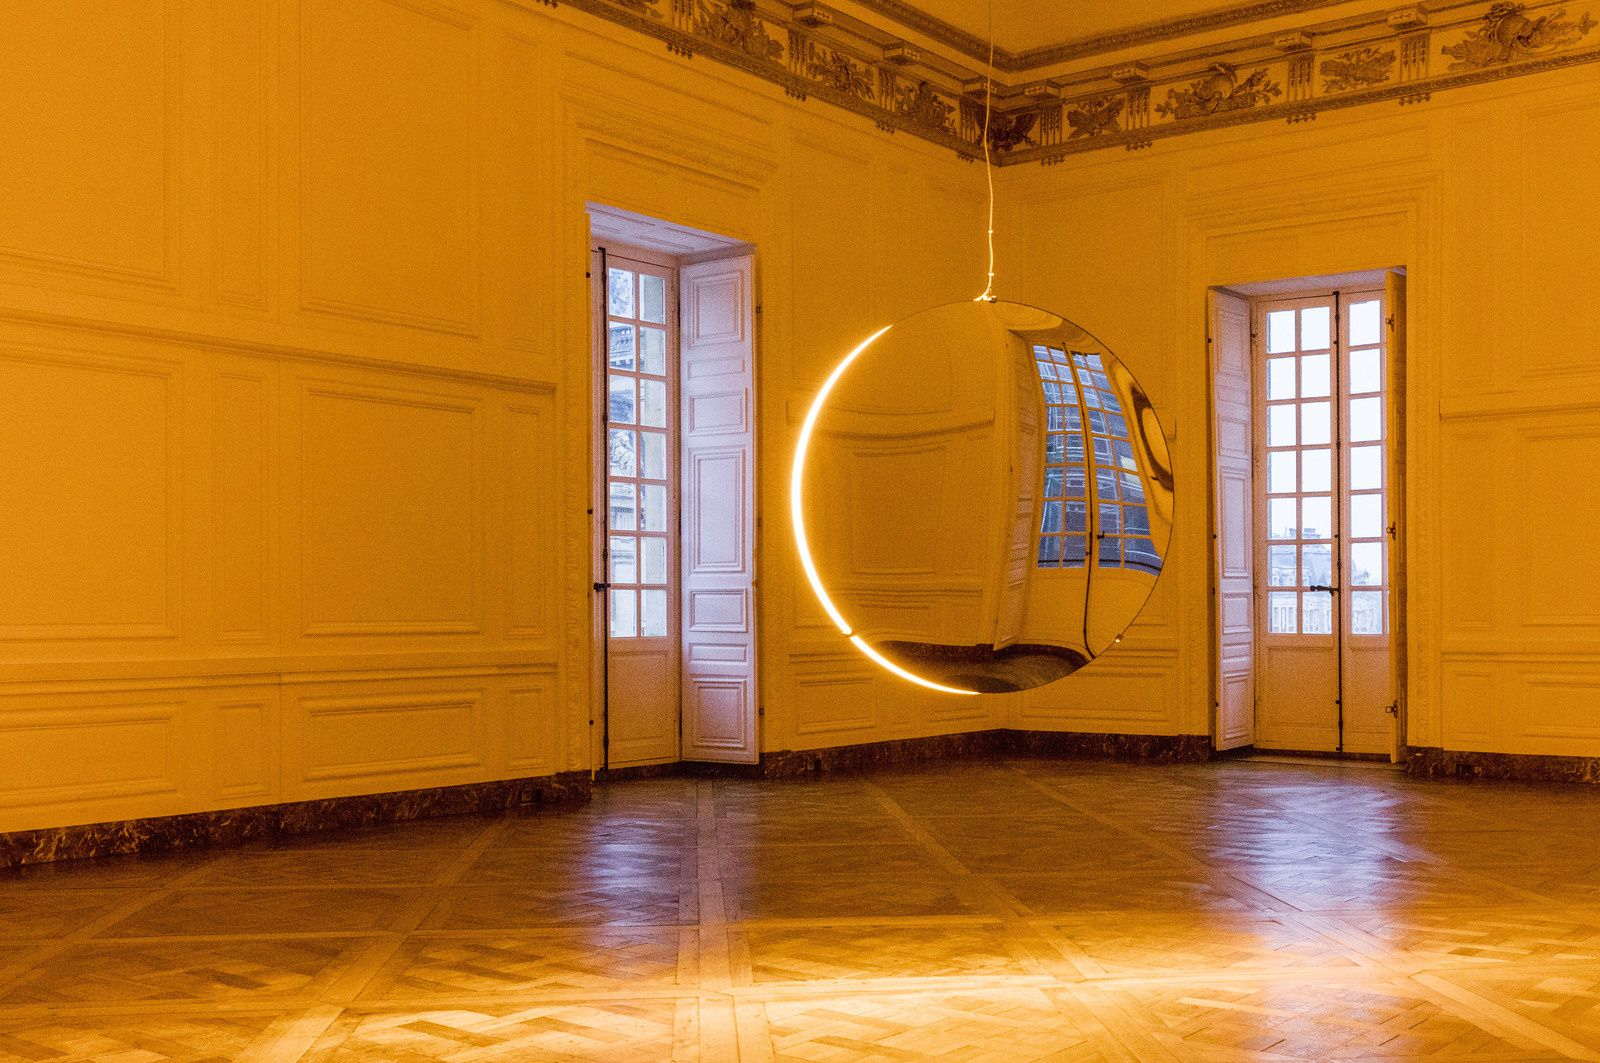 Solar compression, 2016 Installation view, Palace of Versailles, 2016 Photo: Anders Sune Berg Courtesy of the artist; neugerriemschneider, Berlin; Tanya Bonakdar Gallery, New York © 2016 Olafur Eliasson